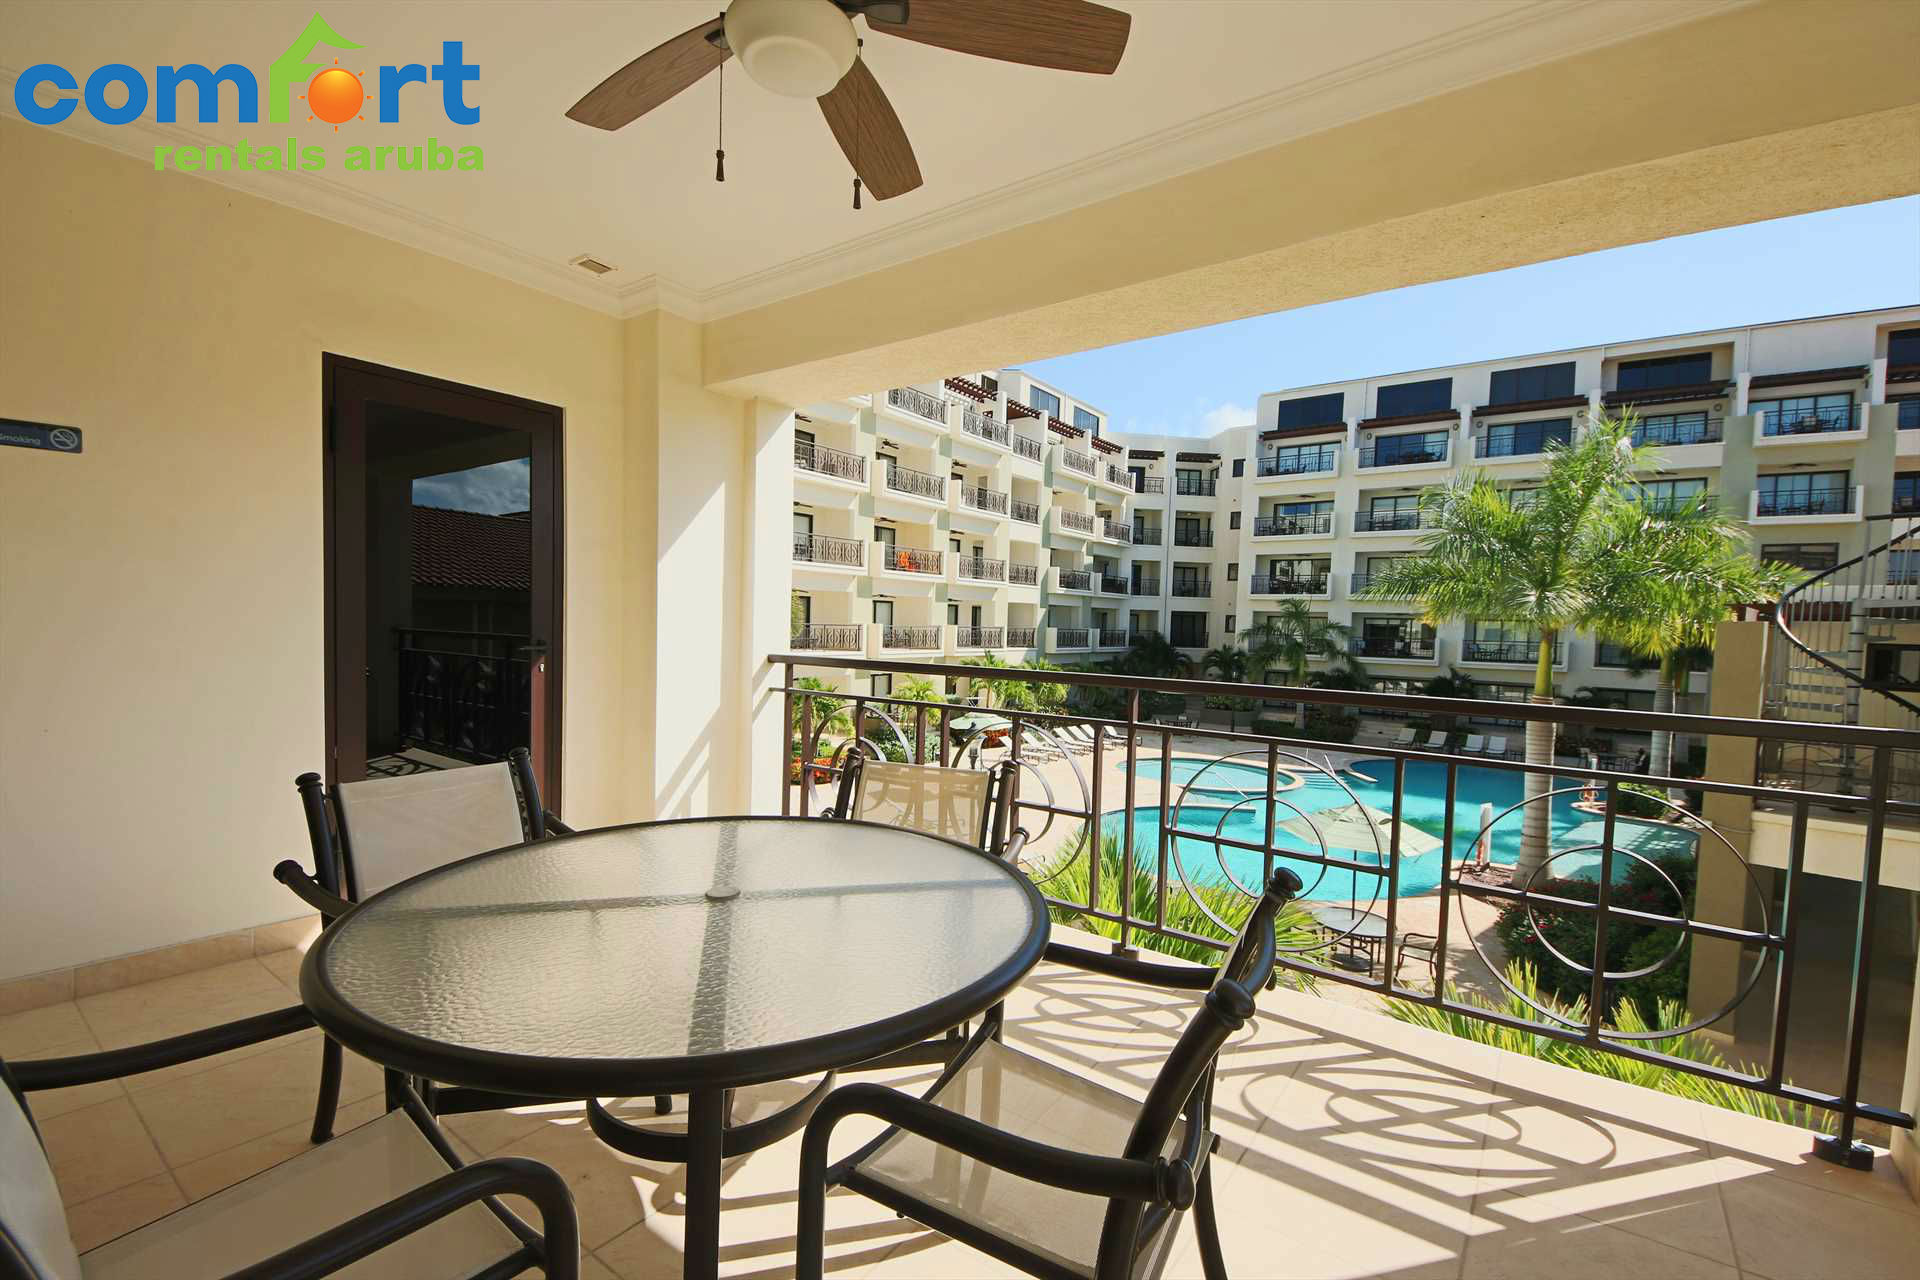 Sit on your spacious balcony and enjoy your amazing pool view!